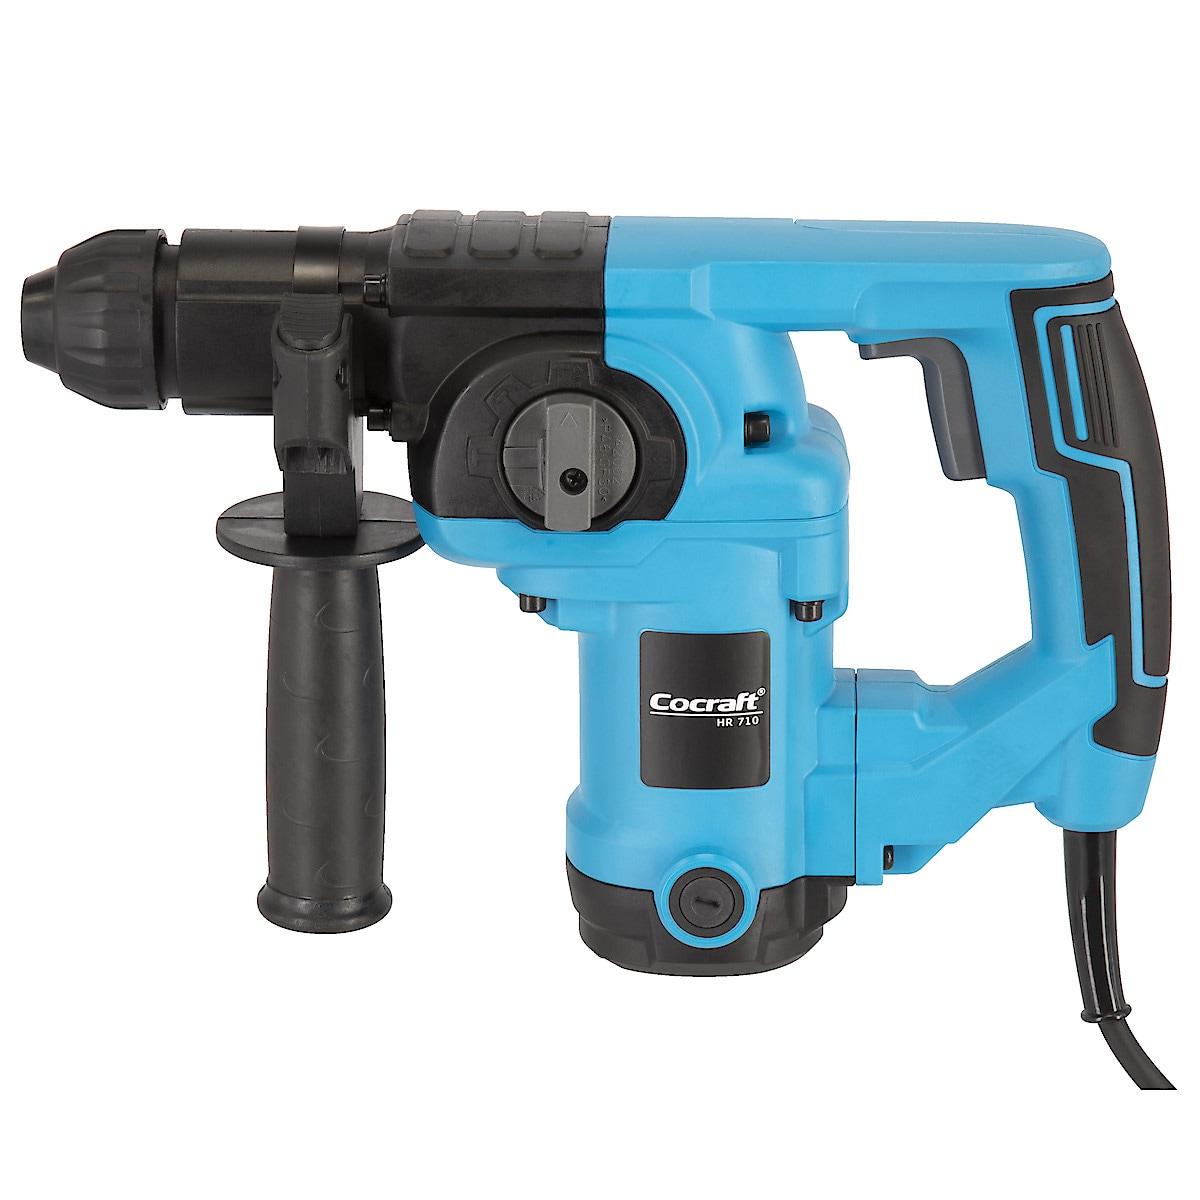 Cocraft HR710 Rotary Hammer Drill